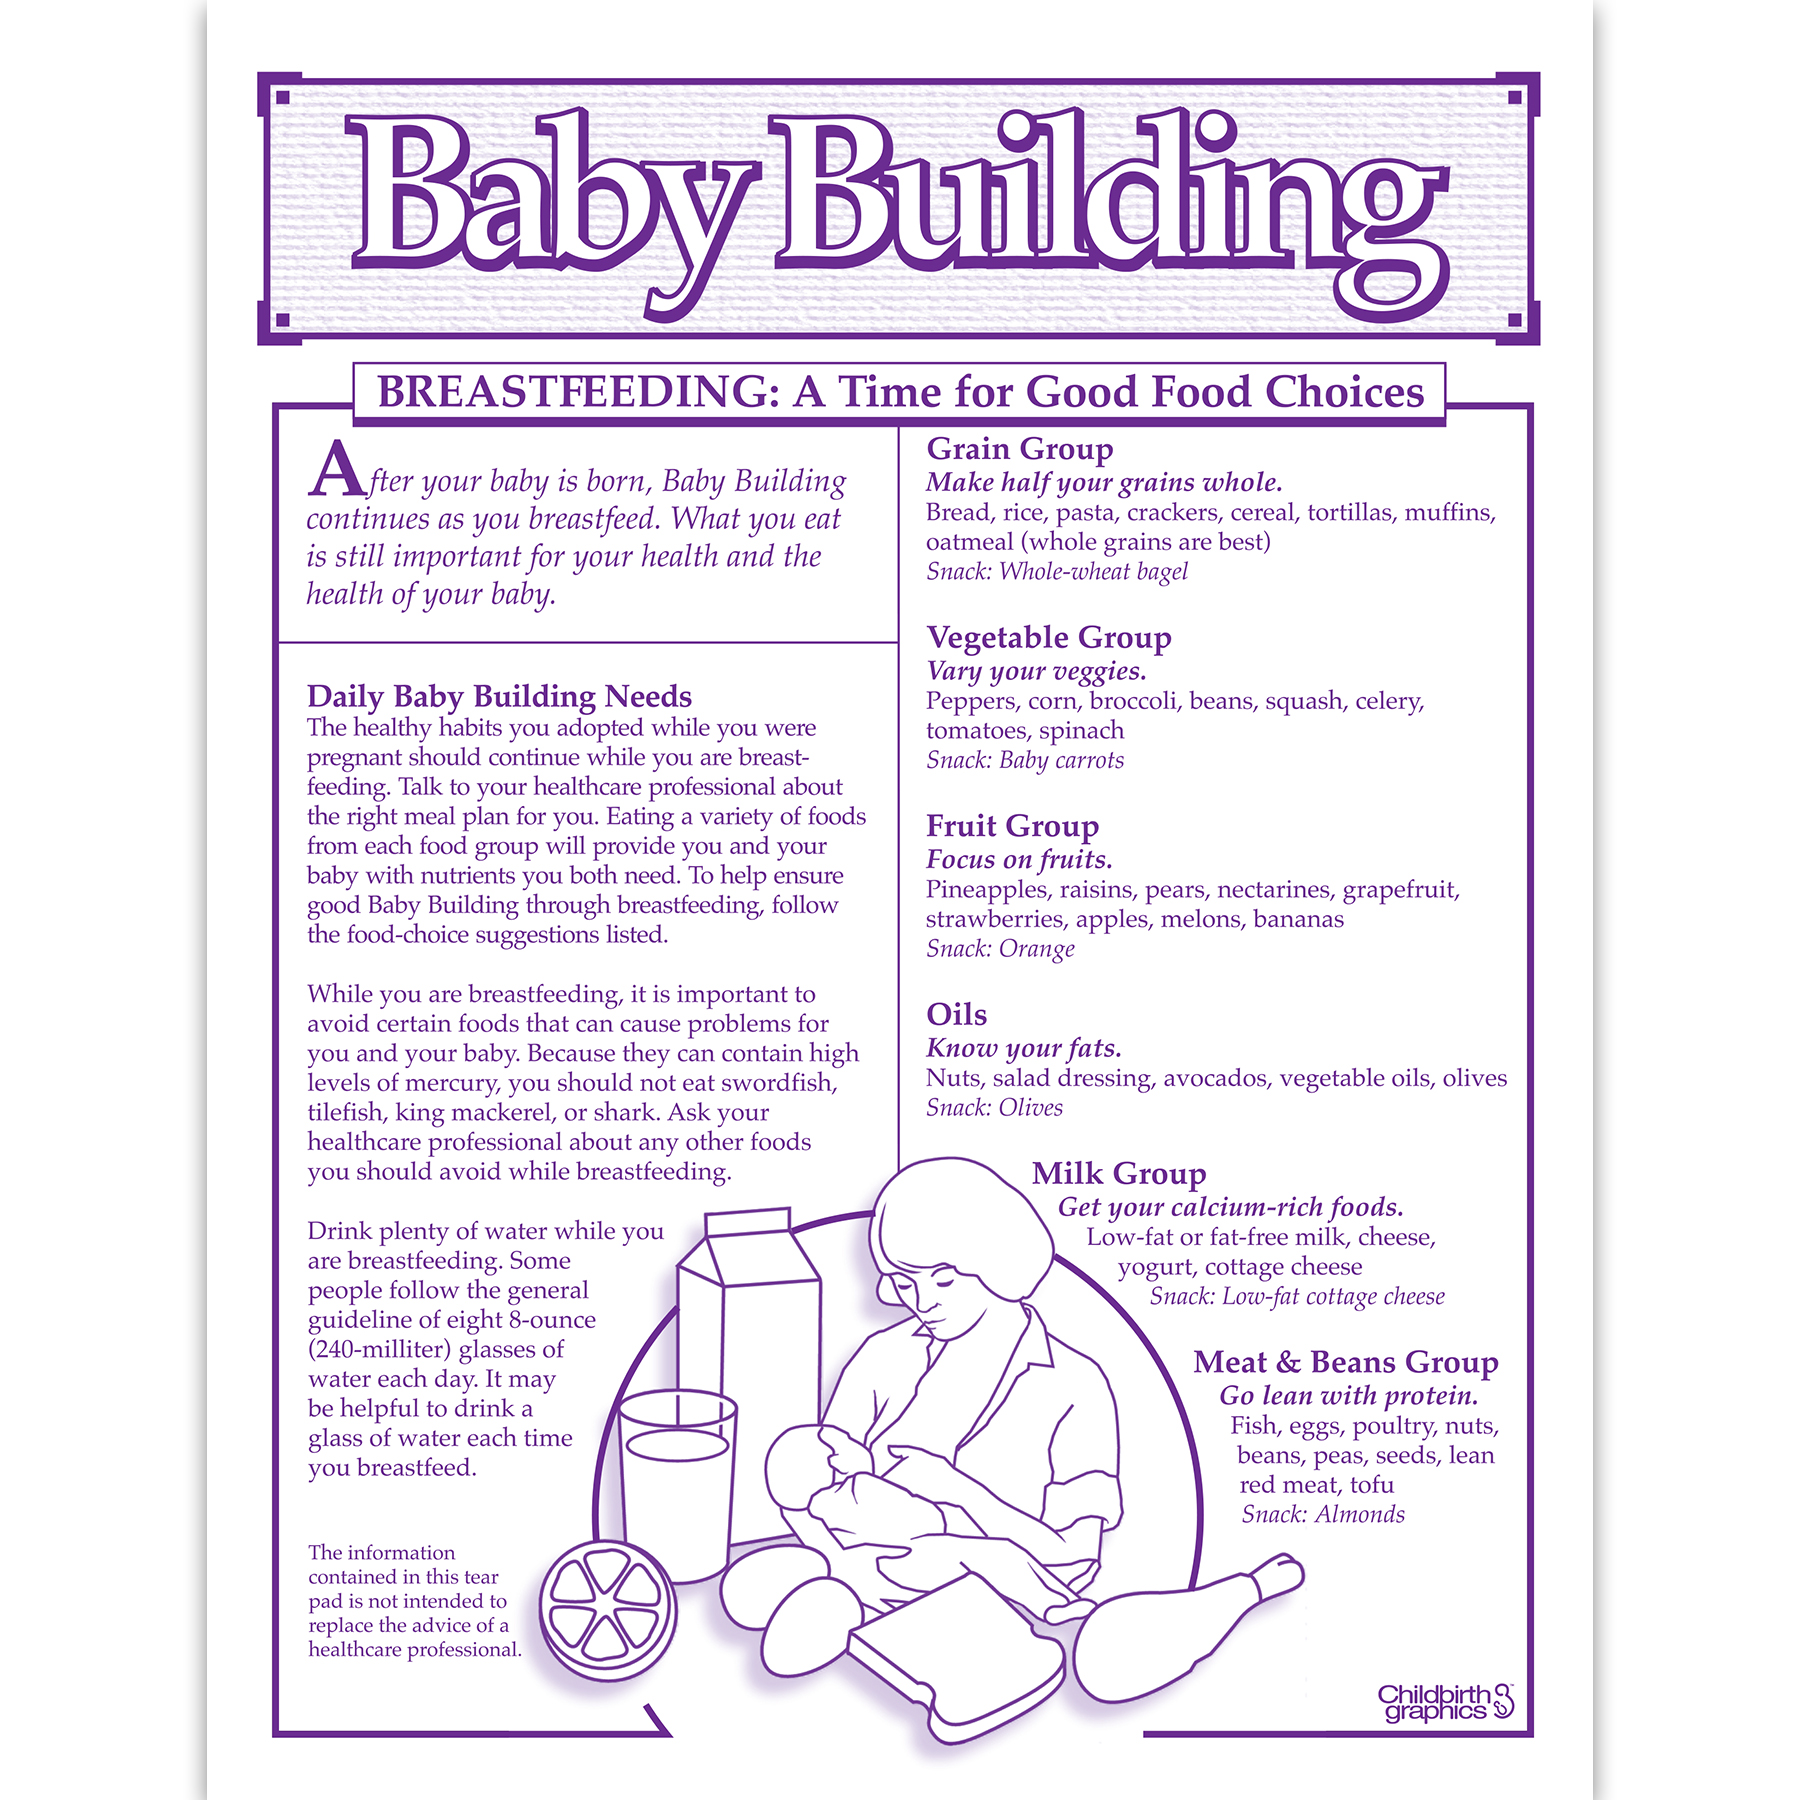 Baby Building 1-color Breastfeeding tear pad English side, good food choices nutritional needs, Childbirth Graphics, 52523